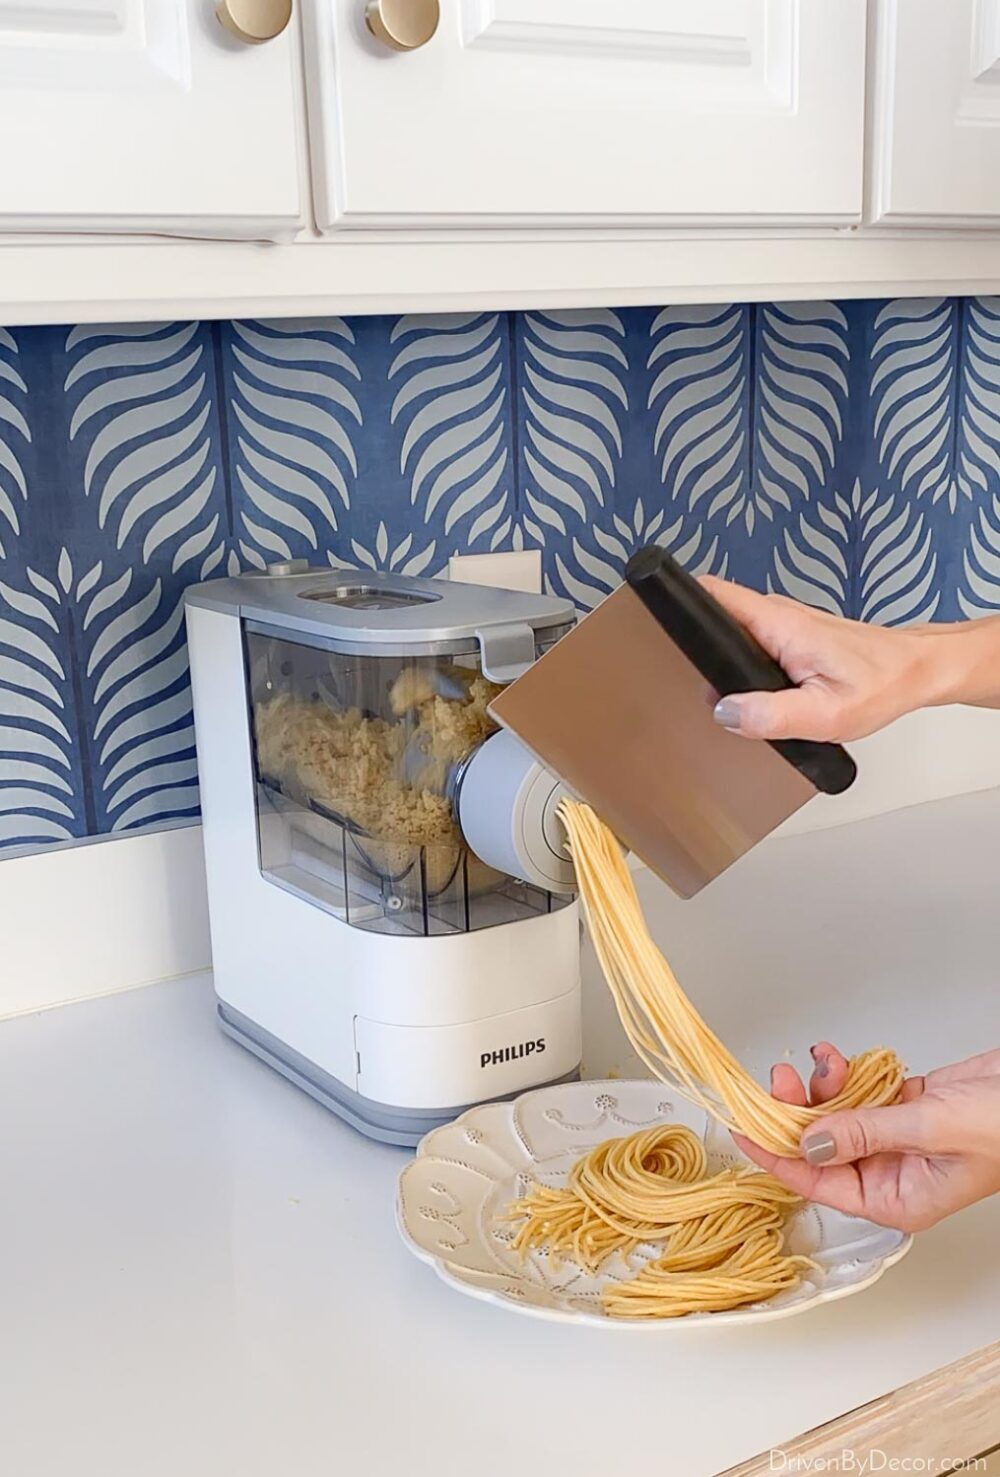 Cutting off the pasta as it comes out of the pasta making machine